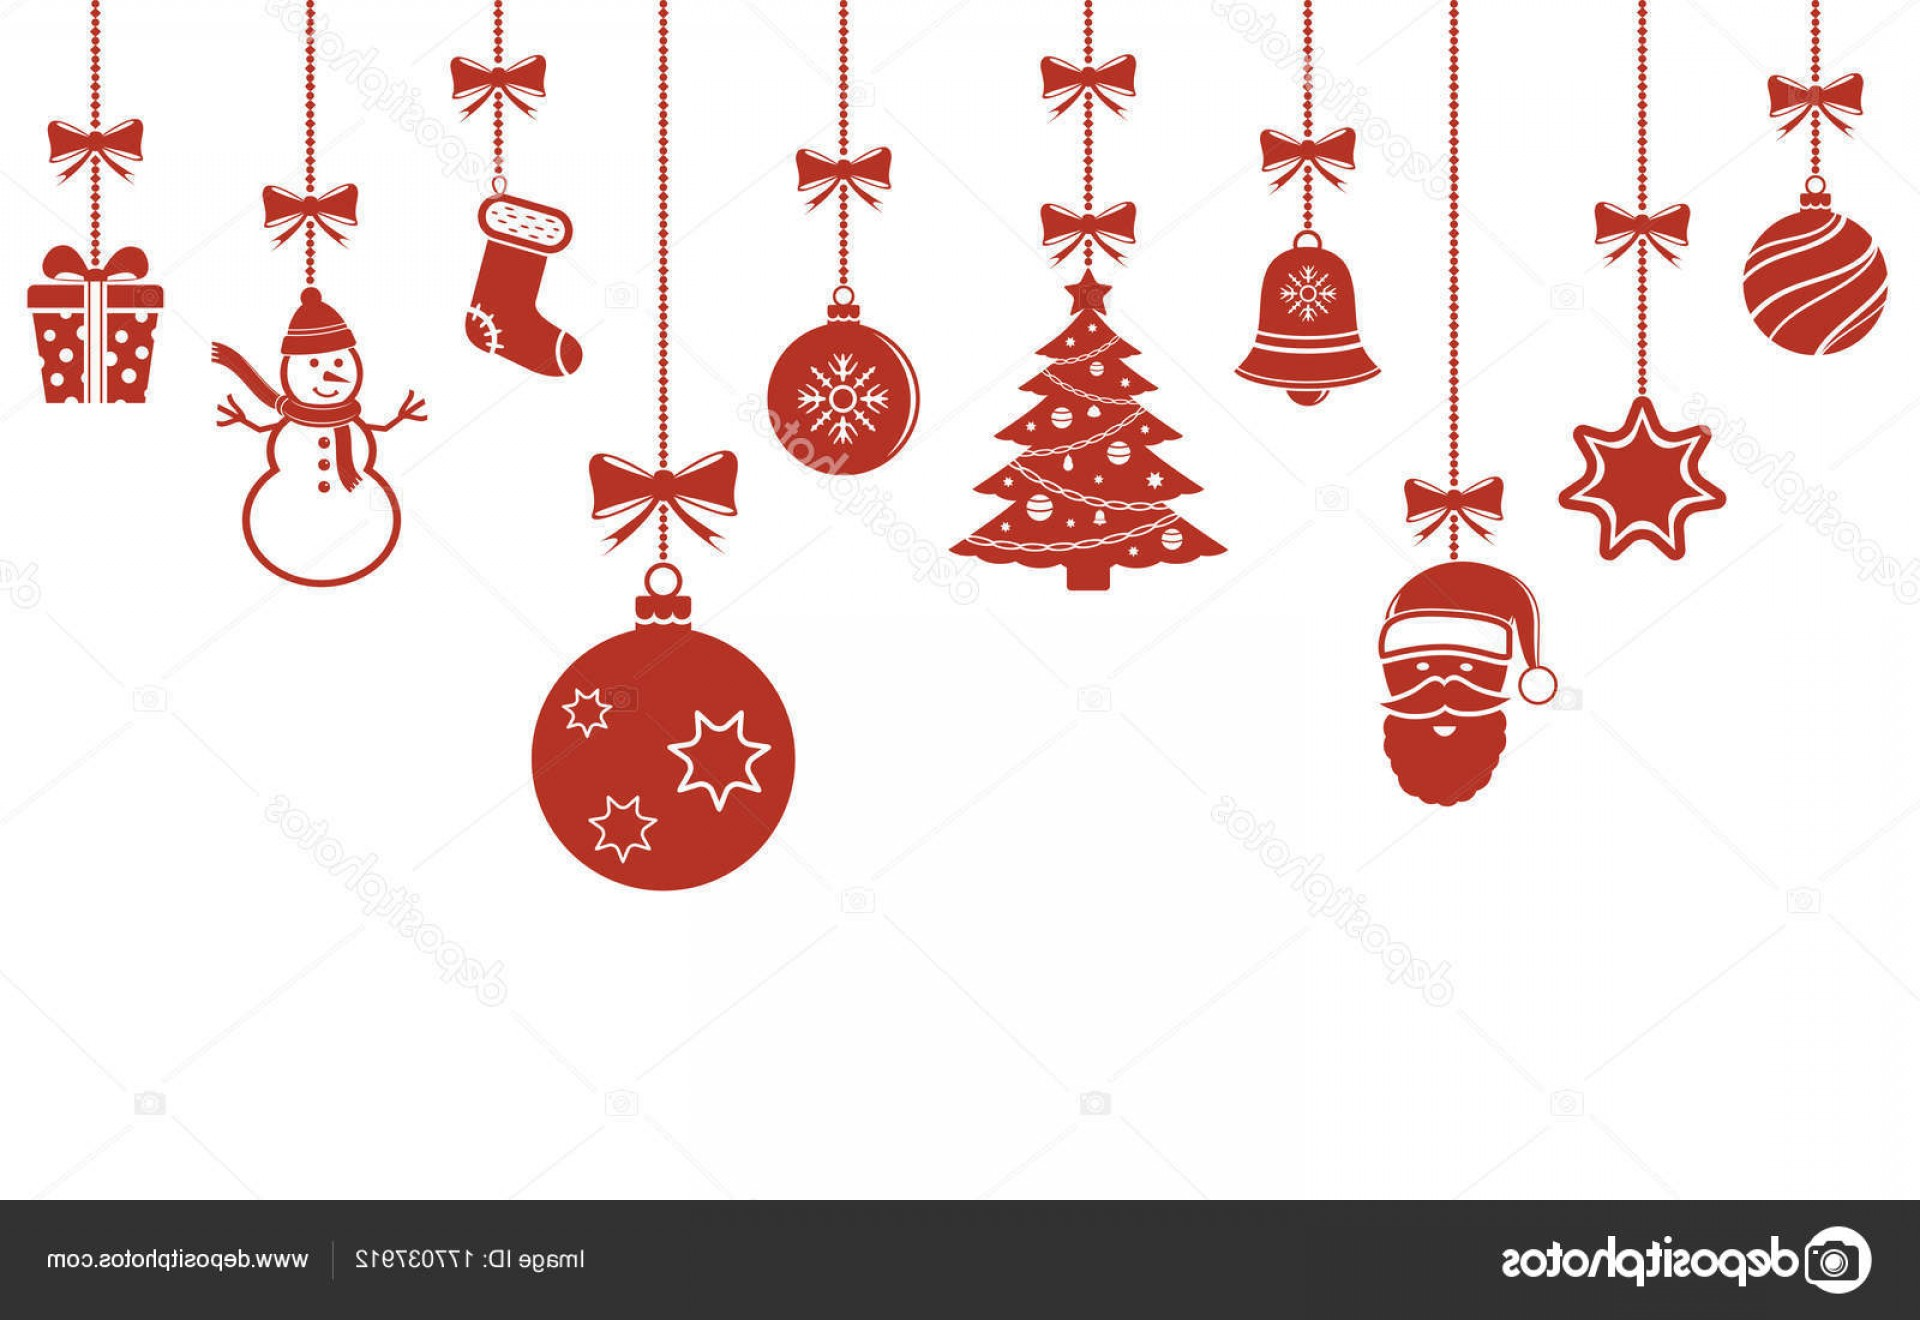 1920x1320 Vector Christmas Ornaments Arenawp